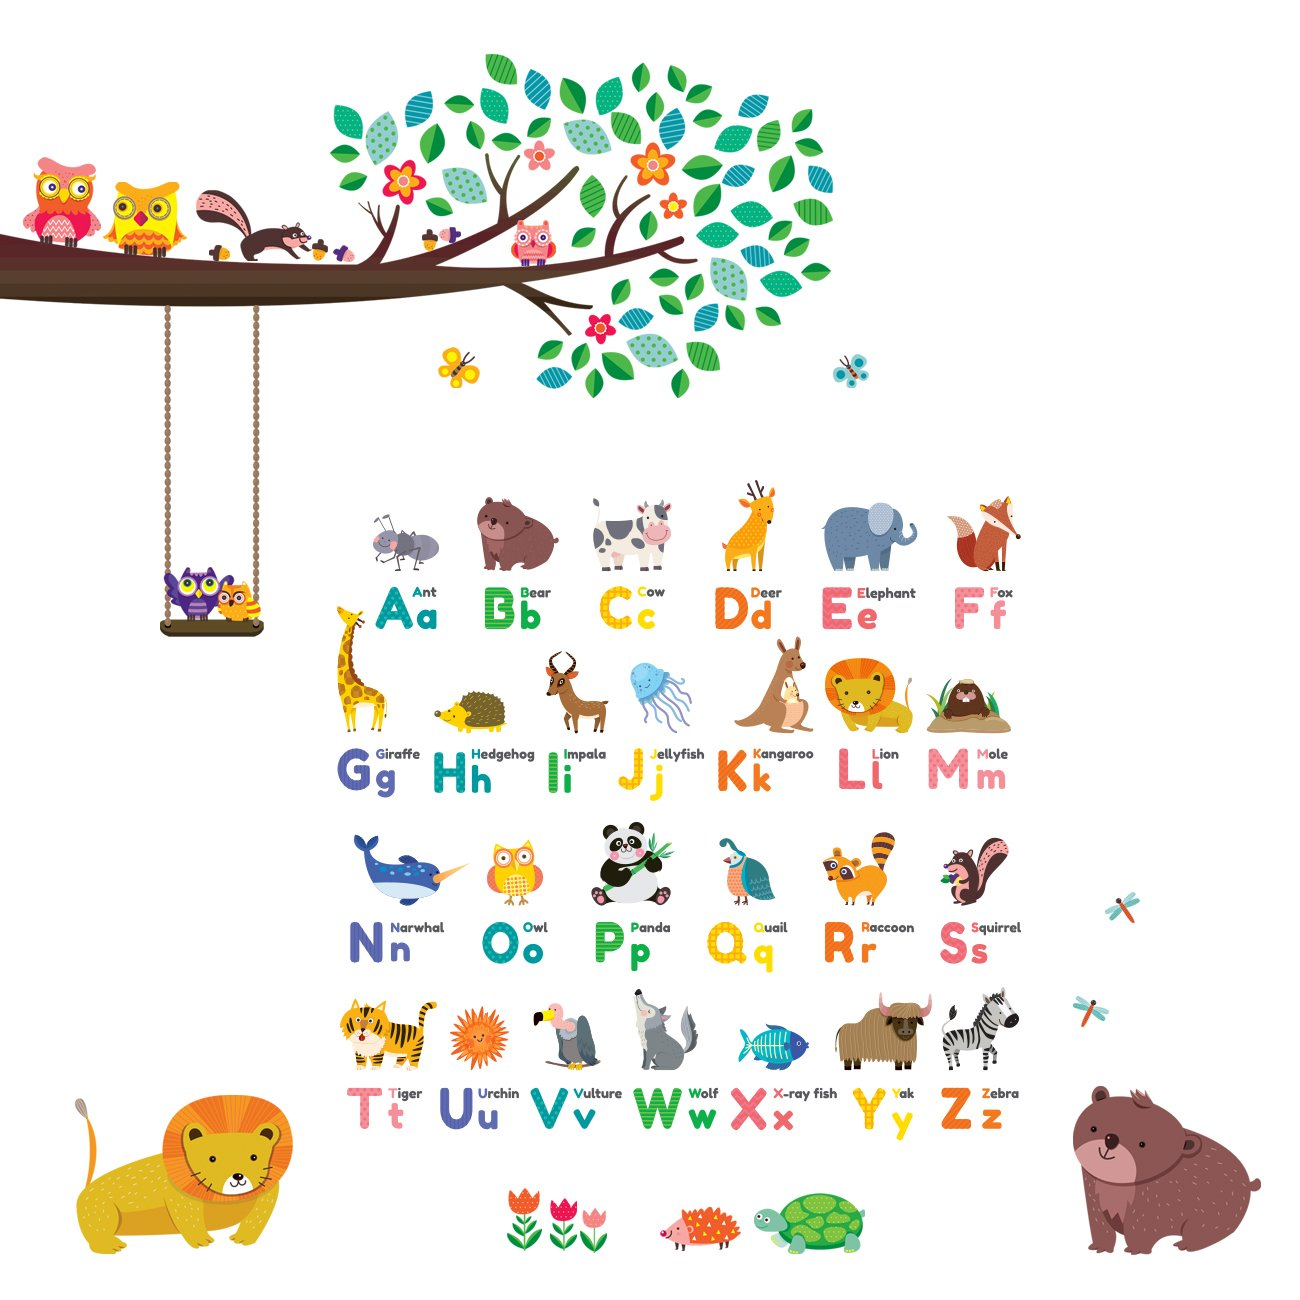 Decowall DW-1614P1410 Animal Alphabet ABC Large Branch Owls Kids Wall Stickers Wall Decals Peel and Stick Removable Wall Stickers for Kids Nursery Bedroom Living Room